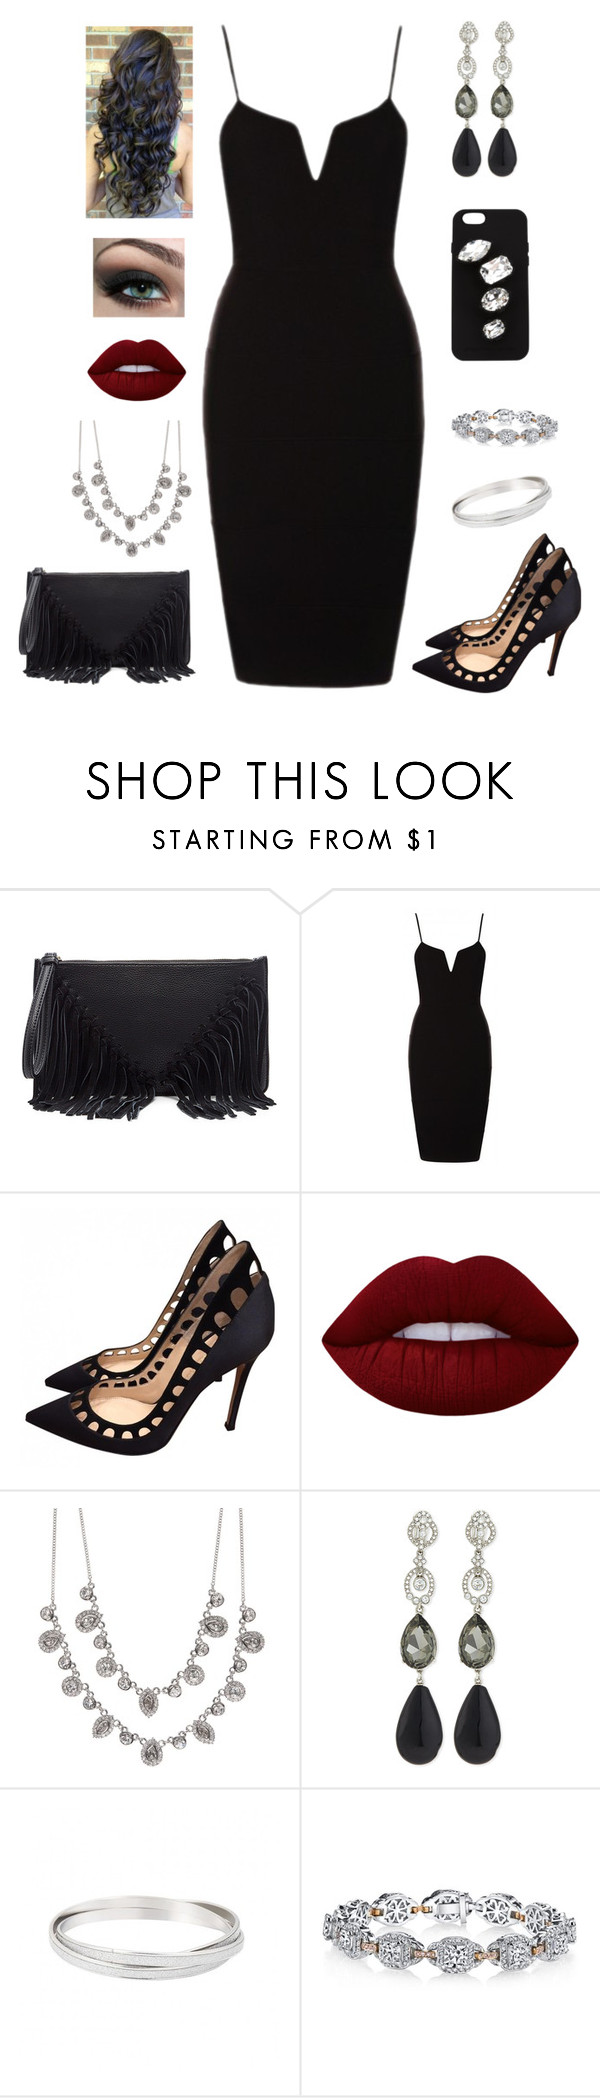 """Untitled #958"" by cutiepie92343 on Polyvore featuring Sole Society, Gianvito Rossi, Lime Crime, Givenchy, Oscar de la Renta, Harry Kotlar and STELLA McCARTNEY"